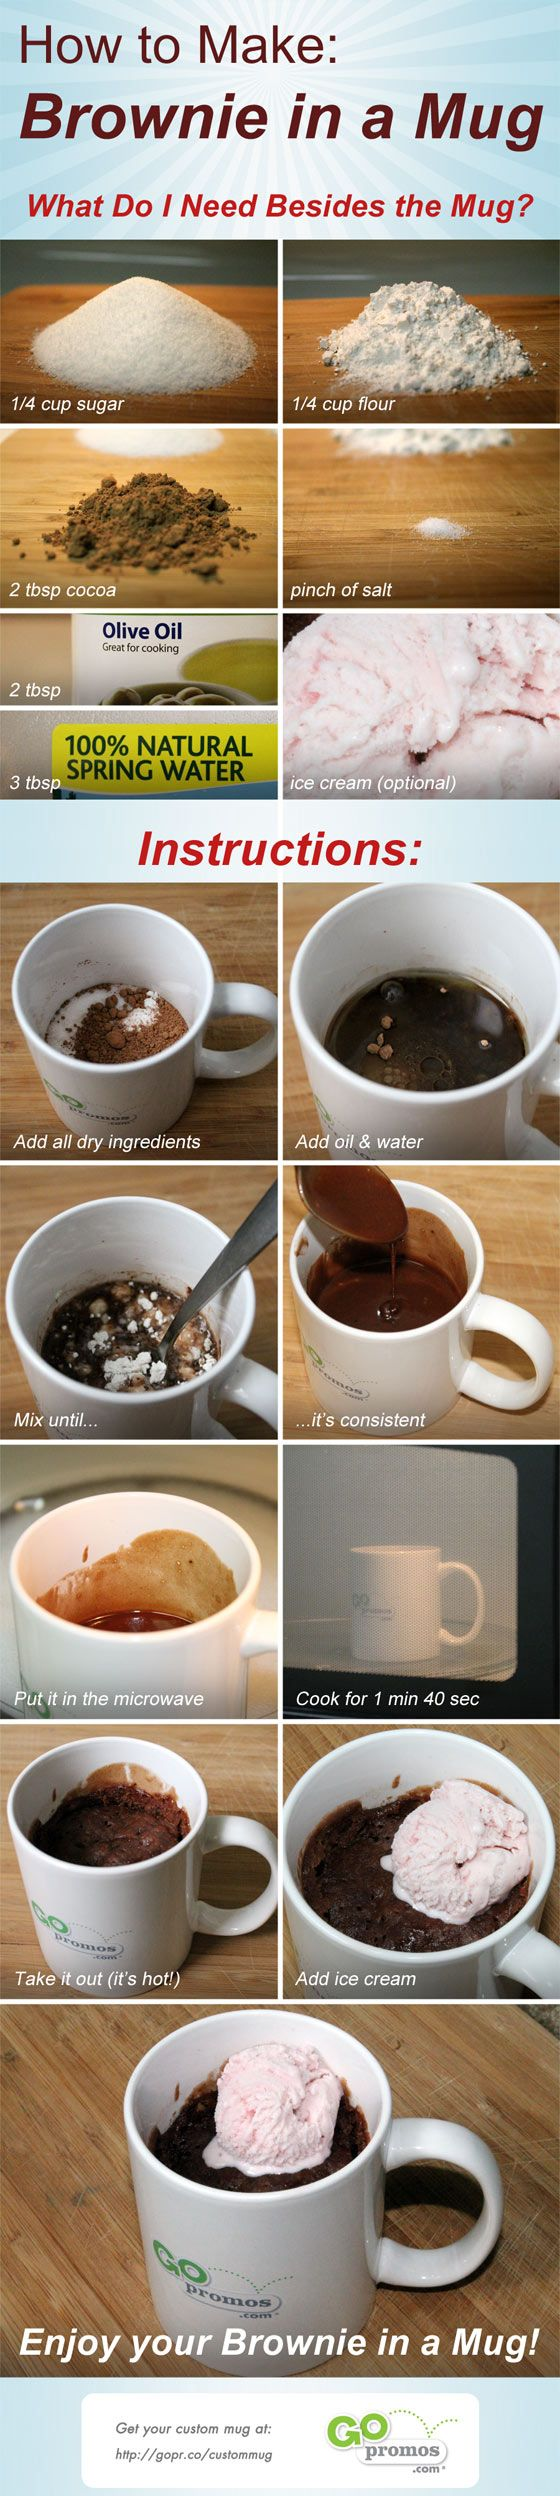 This is Awesome for a quick desert! How to make a brownie in a mug.